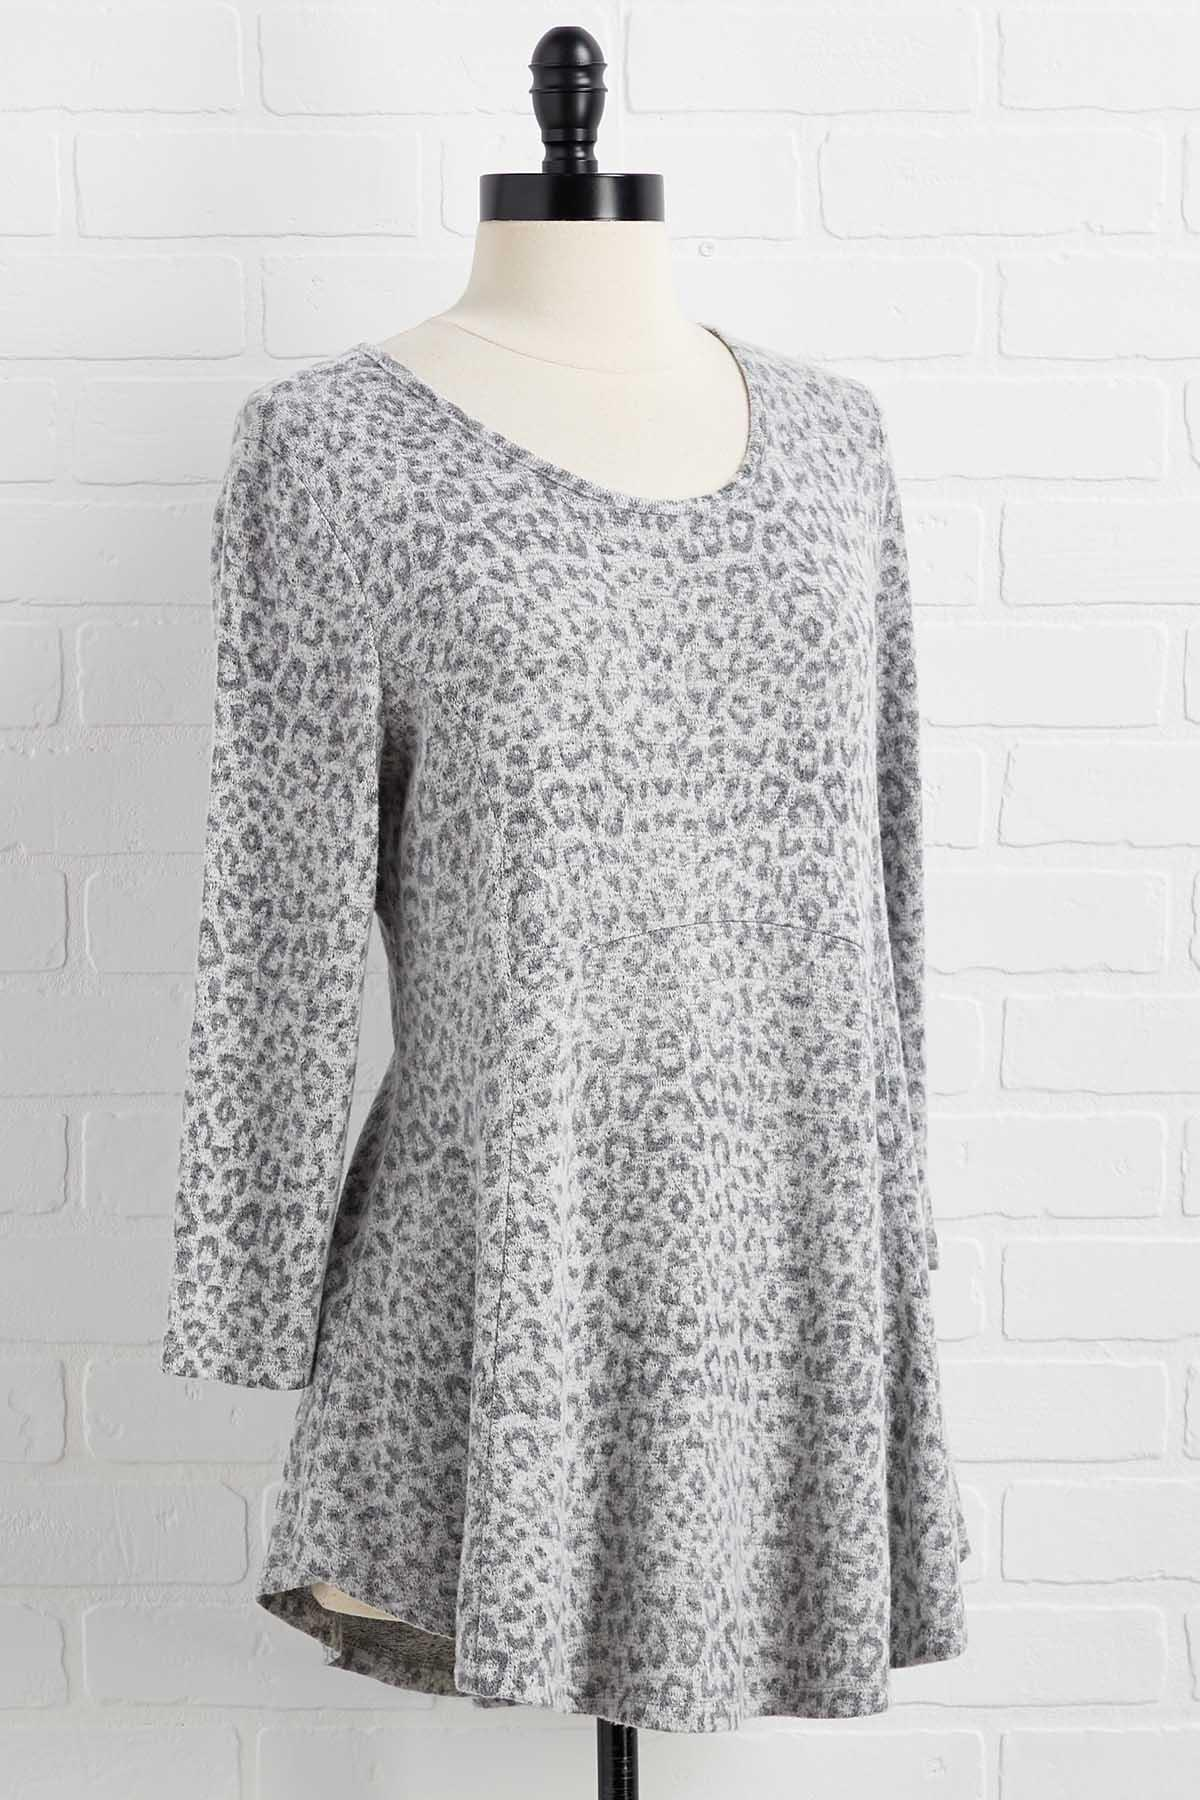 Snow Leopard Tunic Top